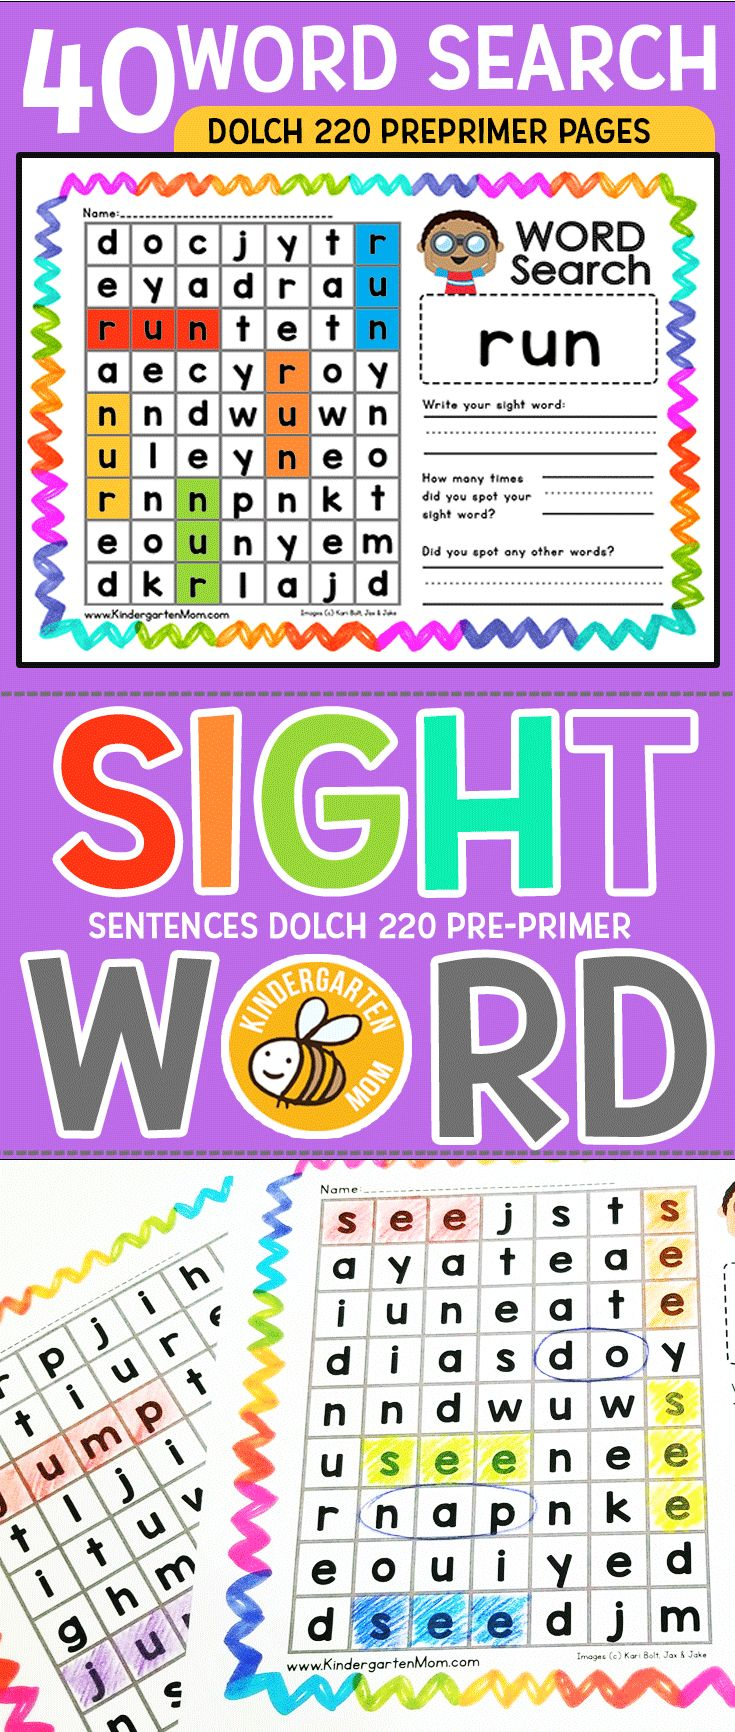 40 Sight Word Word Seach Activity Pages covering Dolce 220 PrePrimer Words. This set is perfect for Preschool and Kindergarten students. When laminated, these sheets would work well in your literacy center.   Learning Sight Words has never been so fun! Each page includes multiple ways to find the sight words, space to wite the sight word, and space to write other words found.